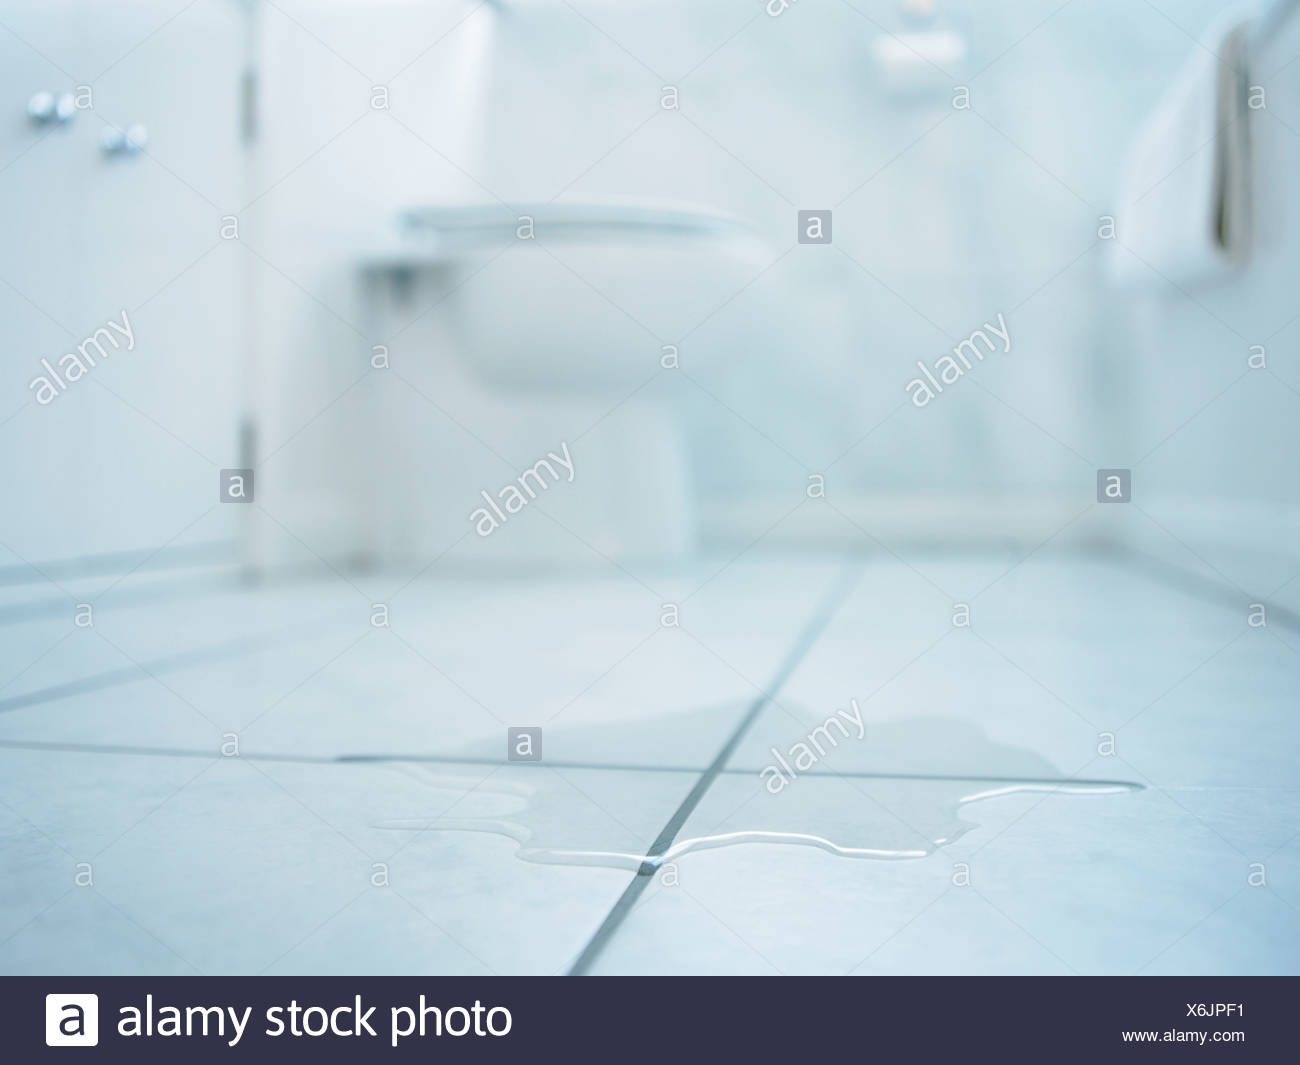 Close up of water spill in bathroom - Stock Image